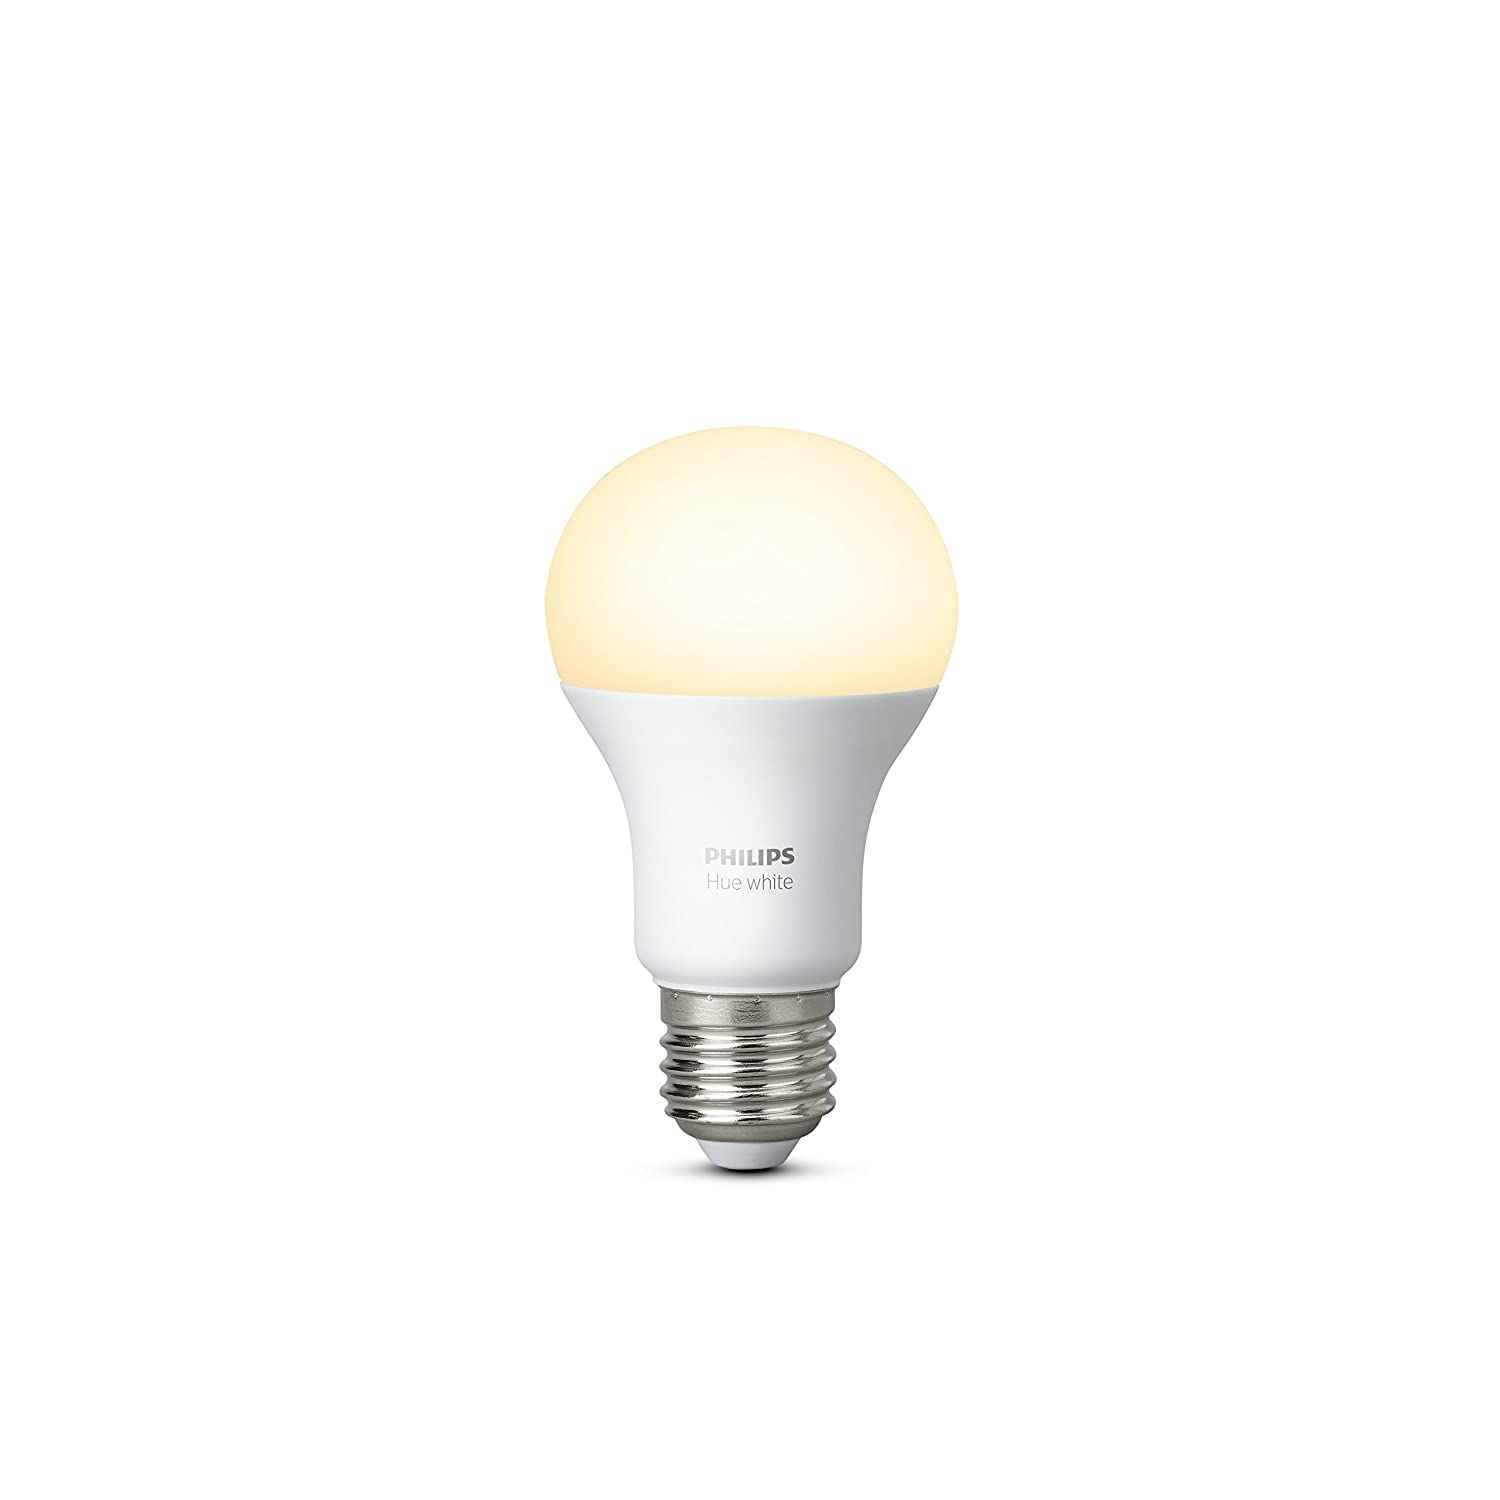 Amazon schalter dimmer baumarkt wipp kippschalter philips hue white e27 led parisarafo Gallery